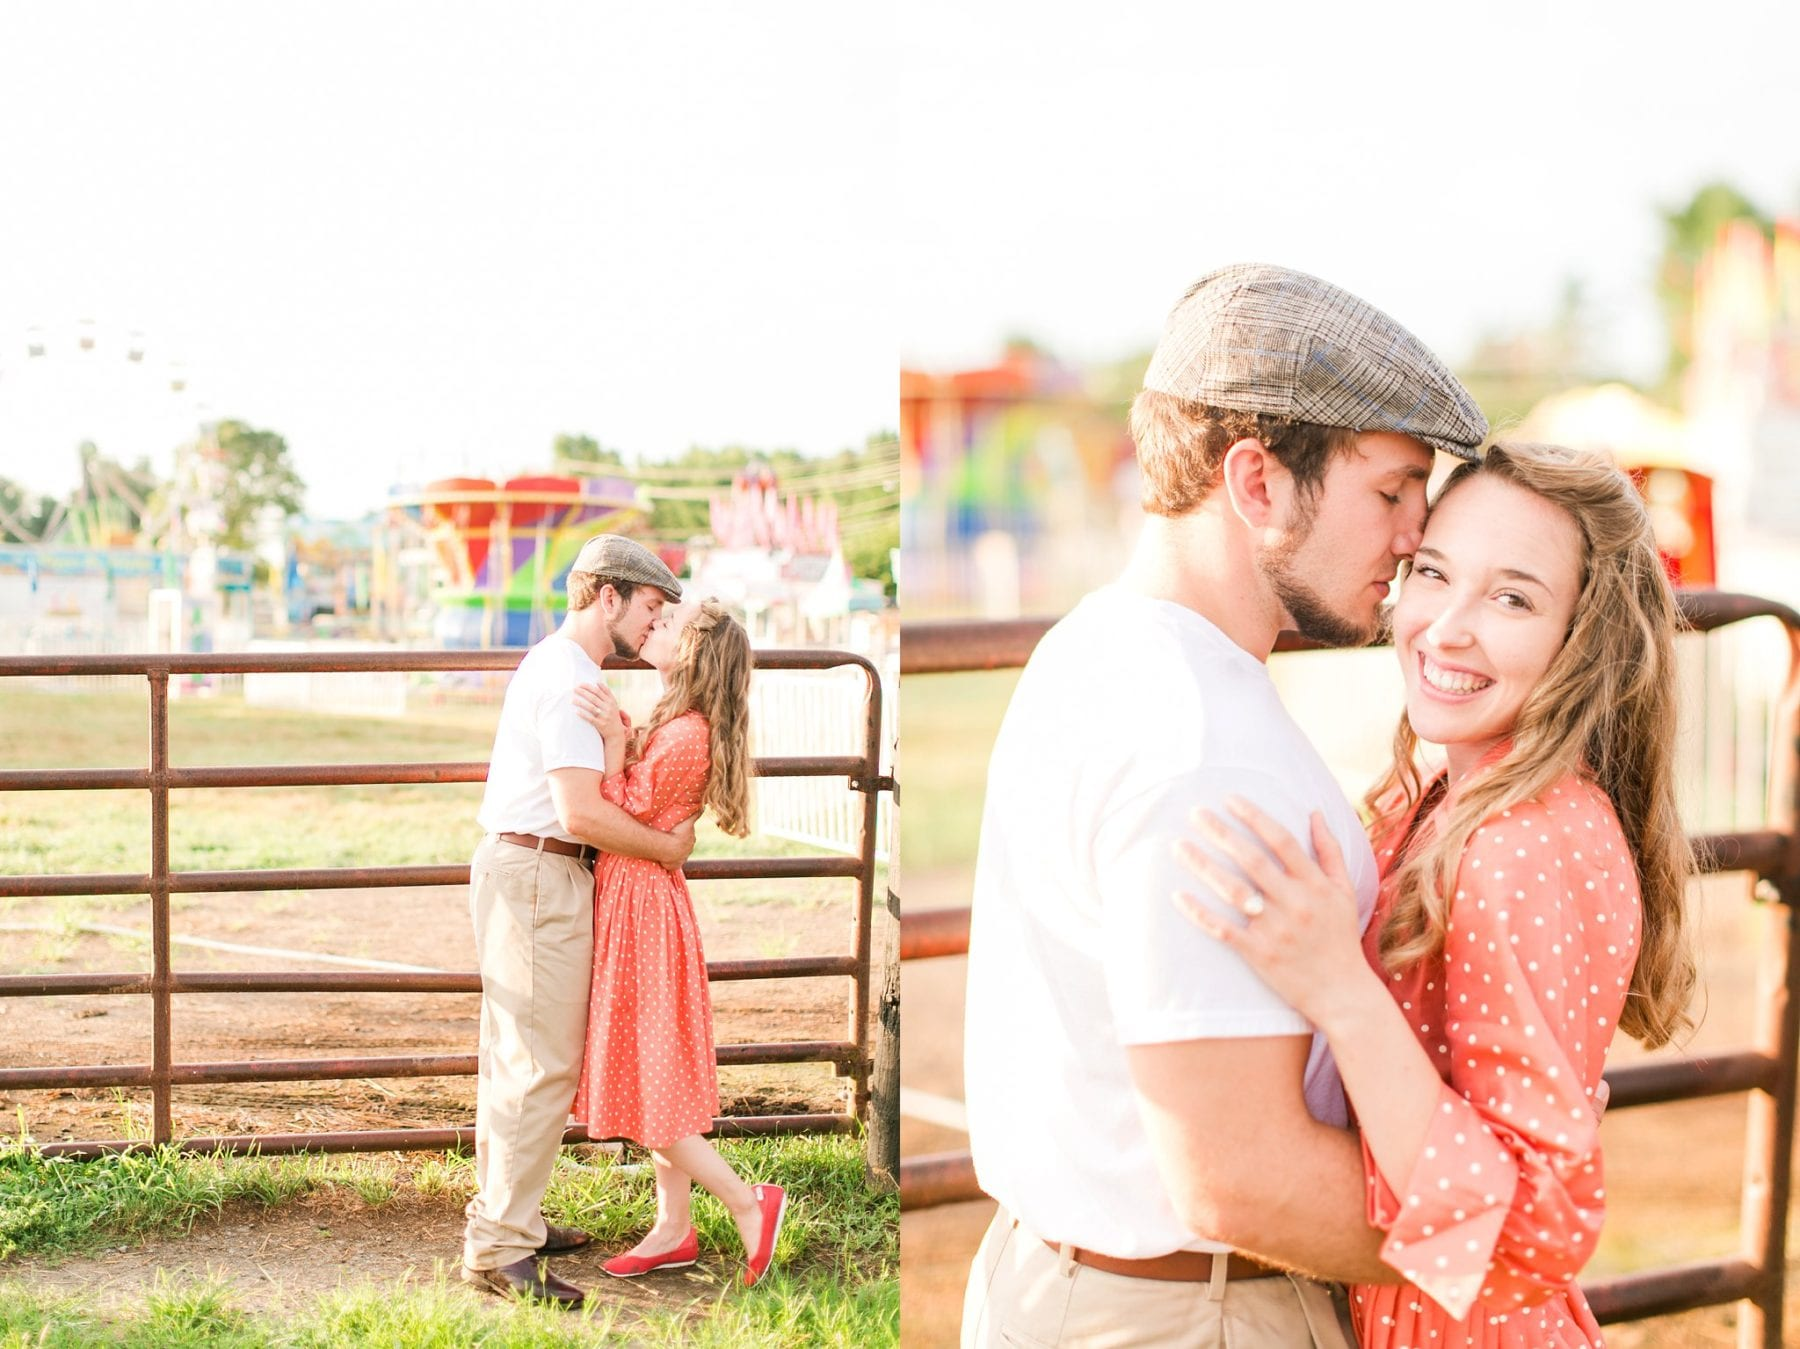 County Fair Engagement Photos Virginia Wedding Photographer Megan Kelsey Photography Samantha & Charles-126.JPG